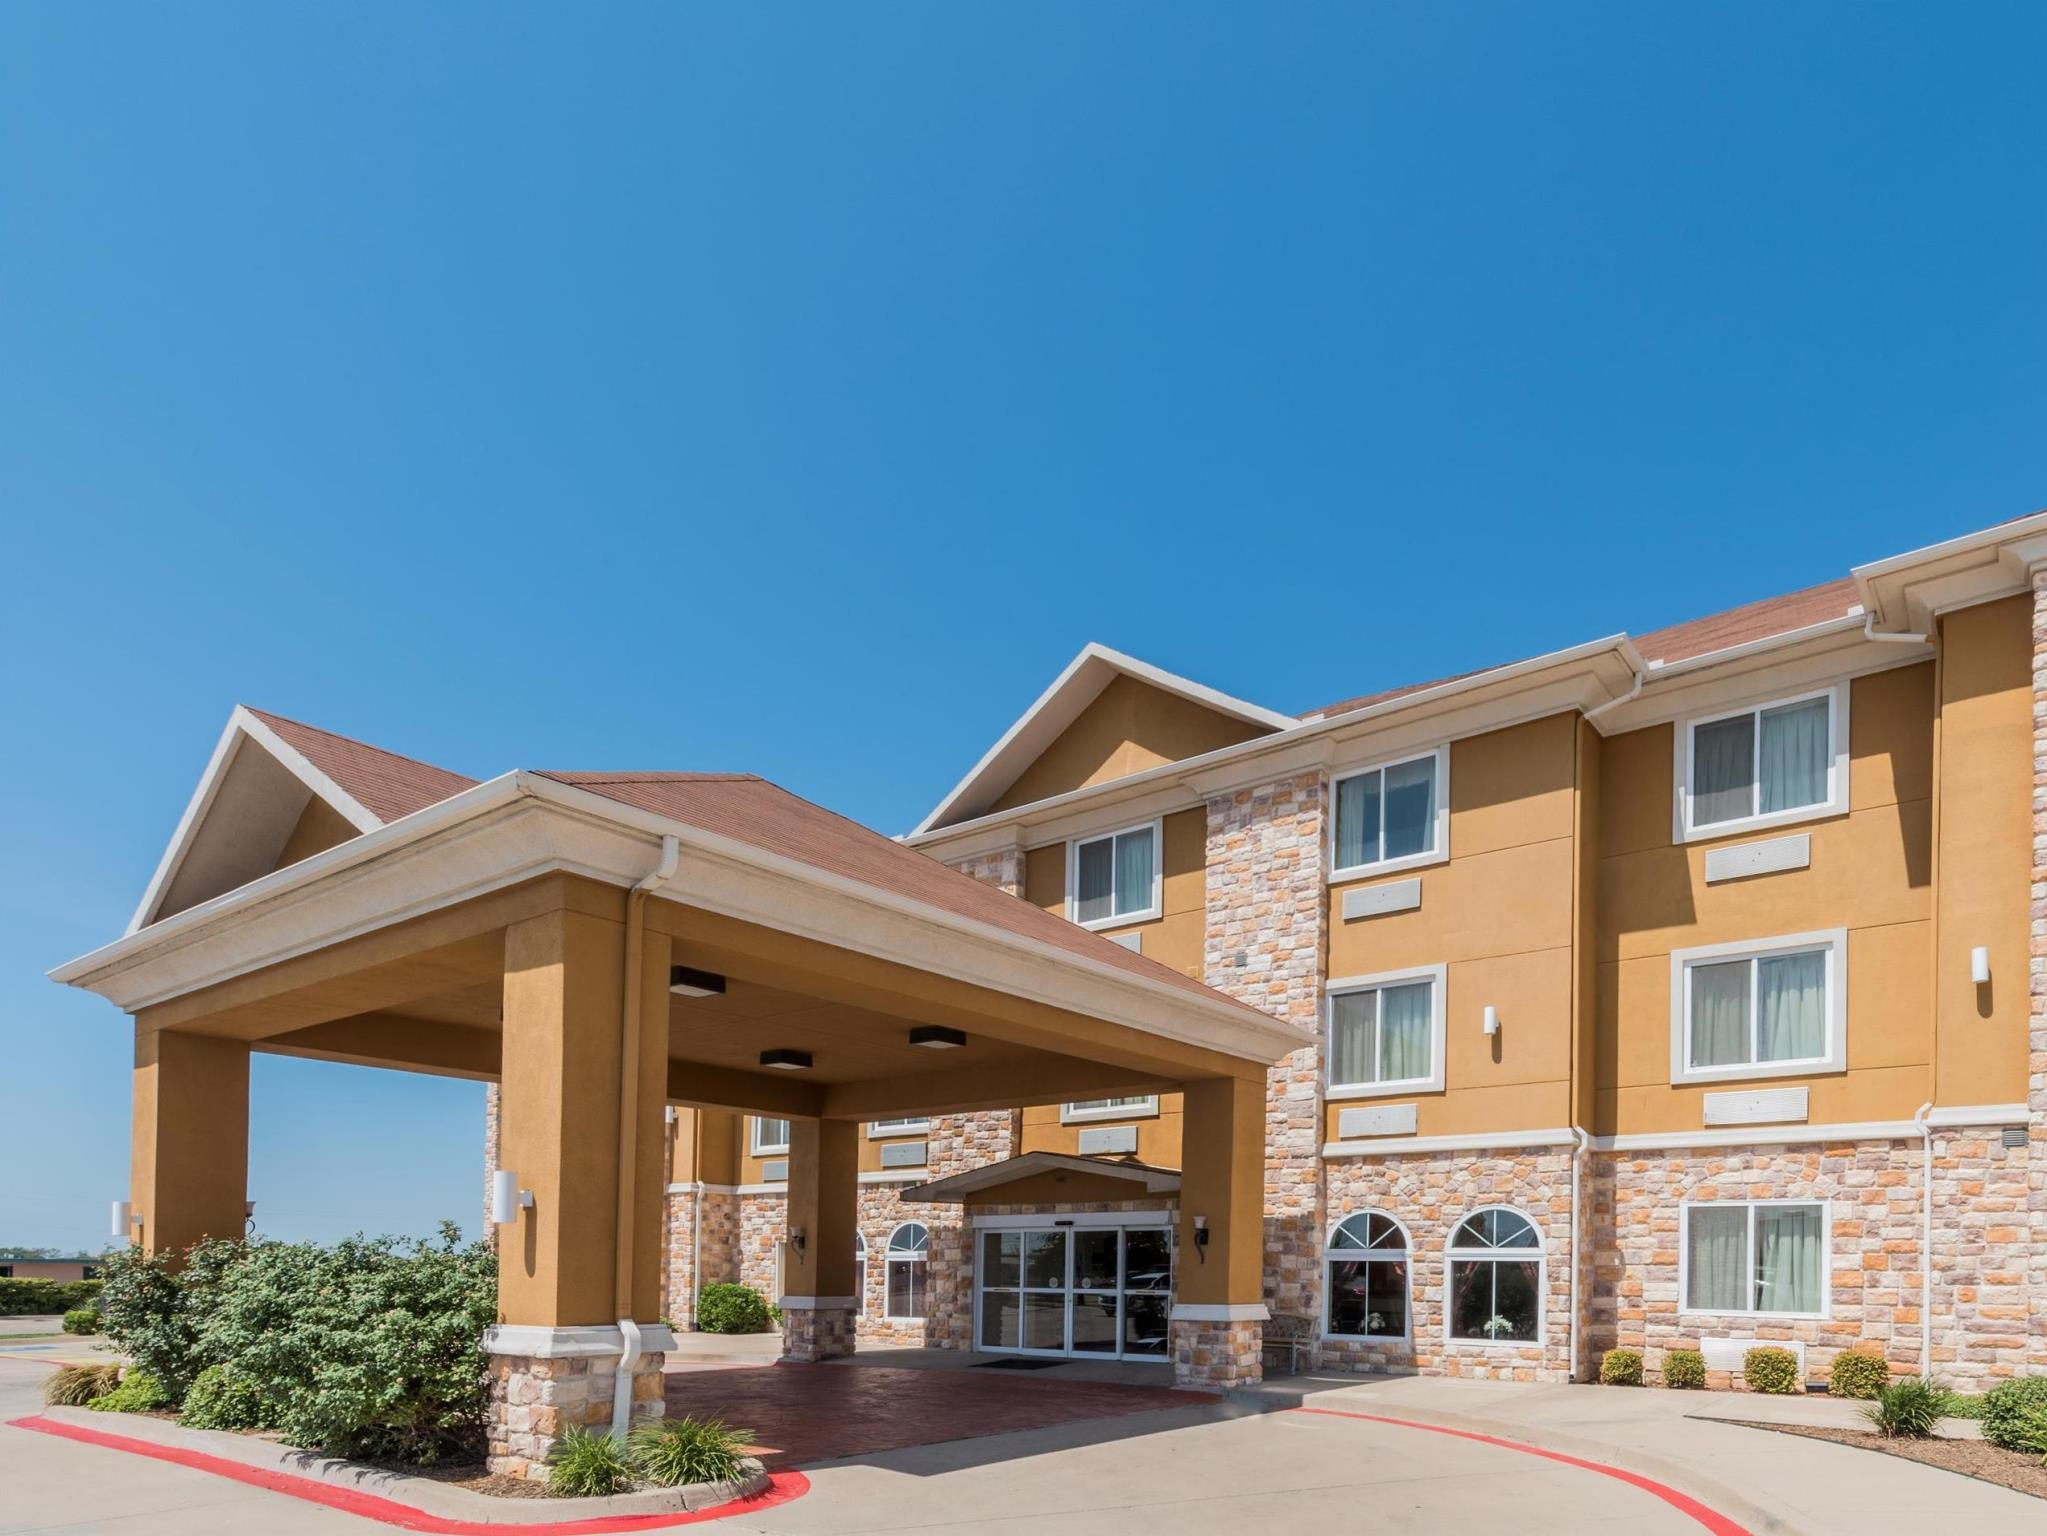 Days Inn And Suites By Wyndham Cleburne TX